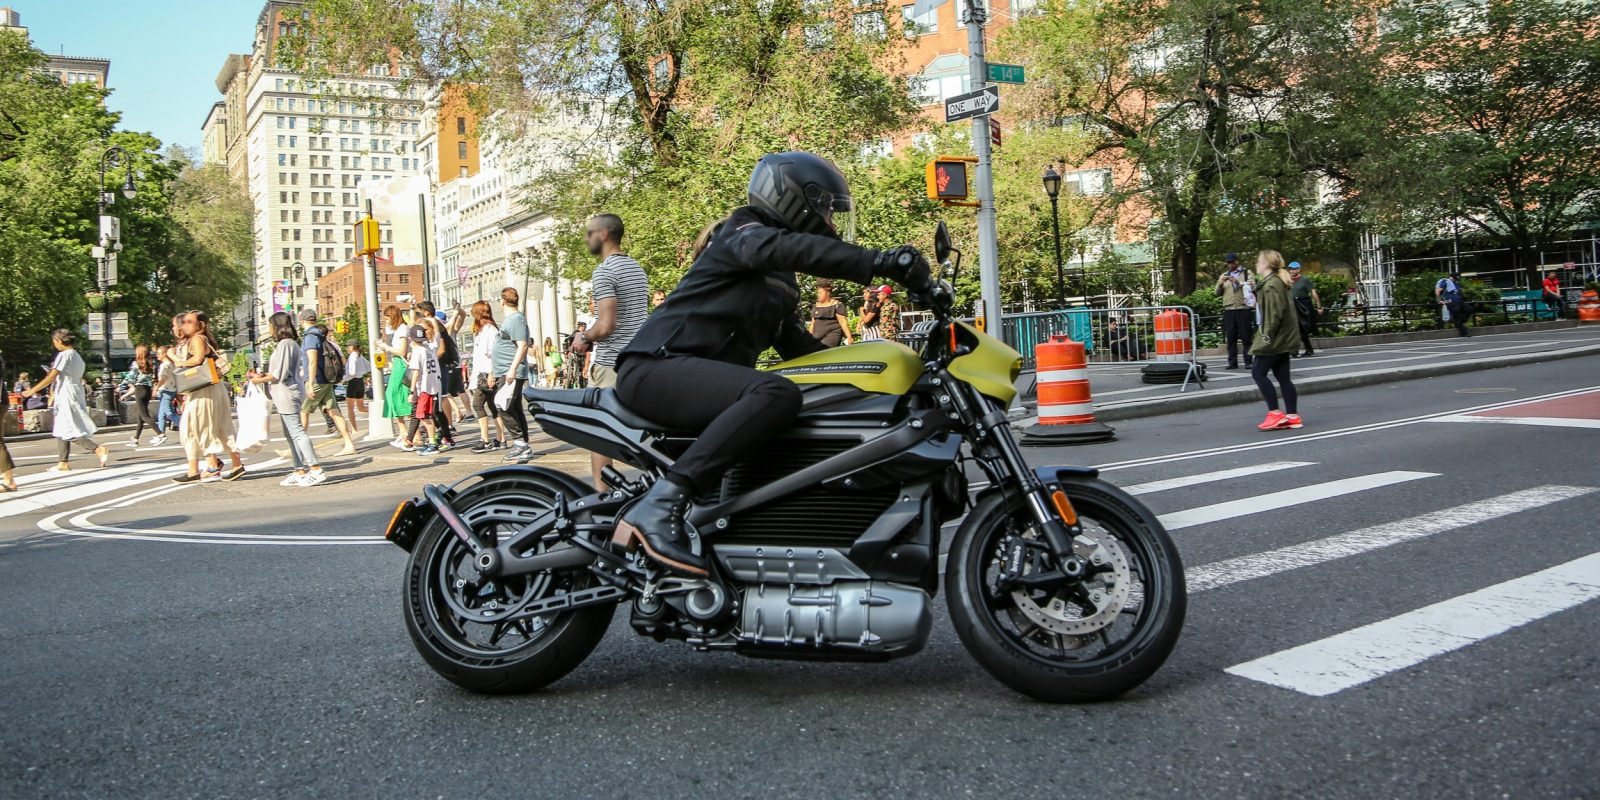 Full specs revealed on the 78 kW Harley-Davidson LiveWire electric motorcycle